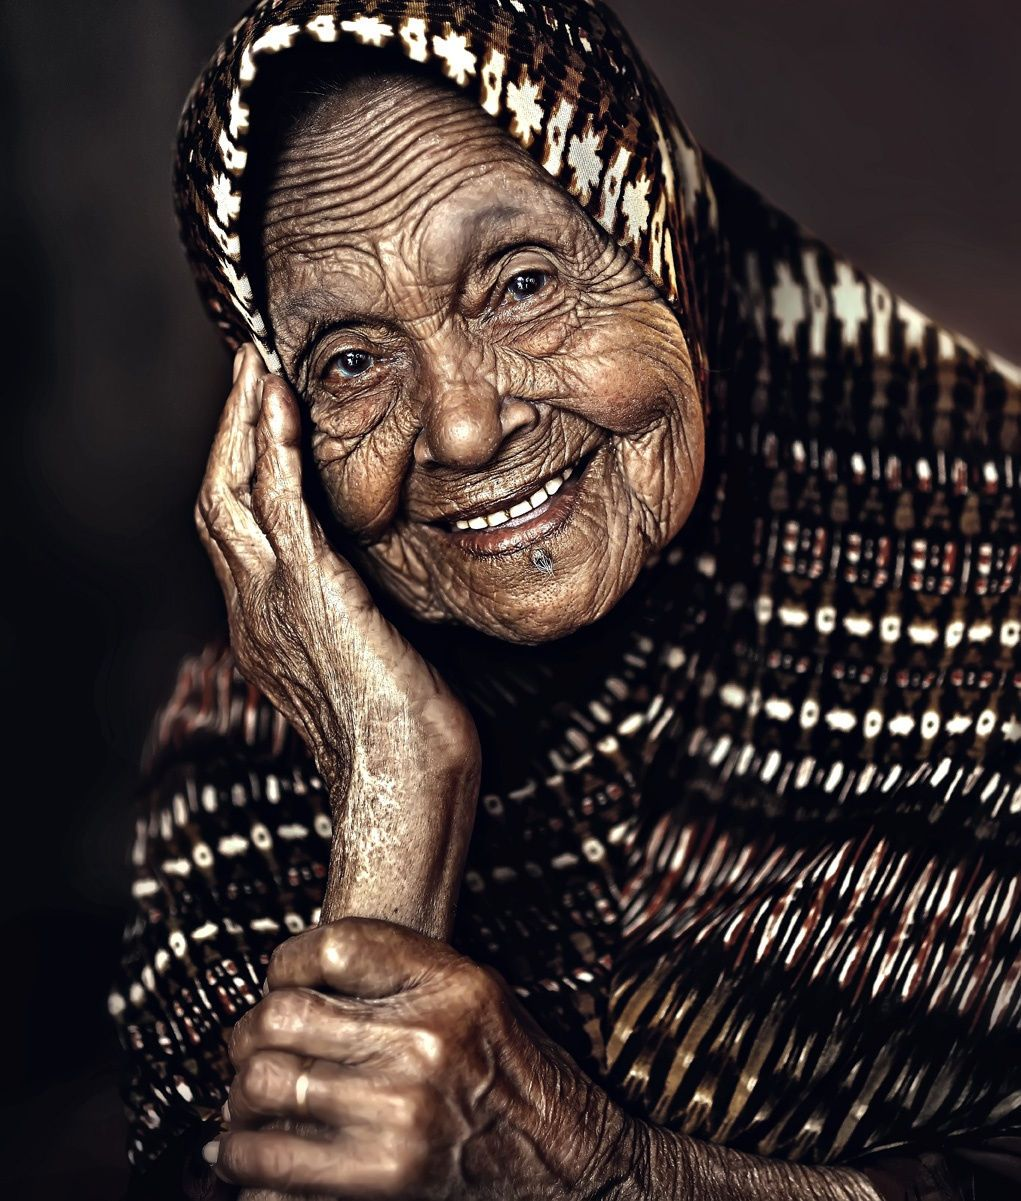 A thousand wrinkles and a beautiful smile.